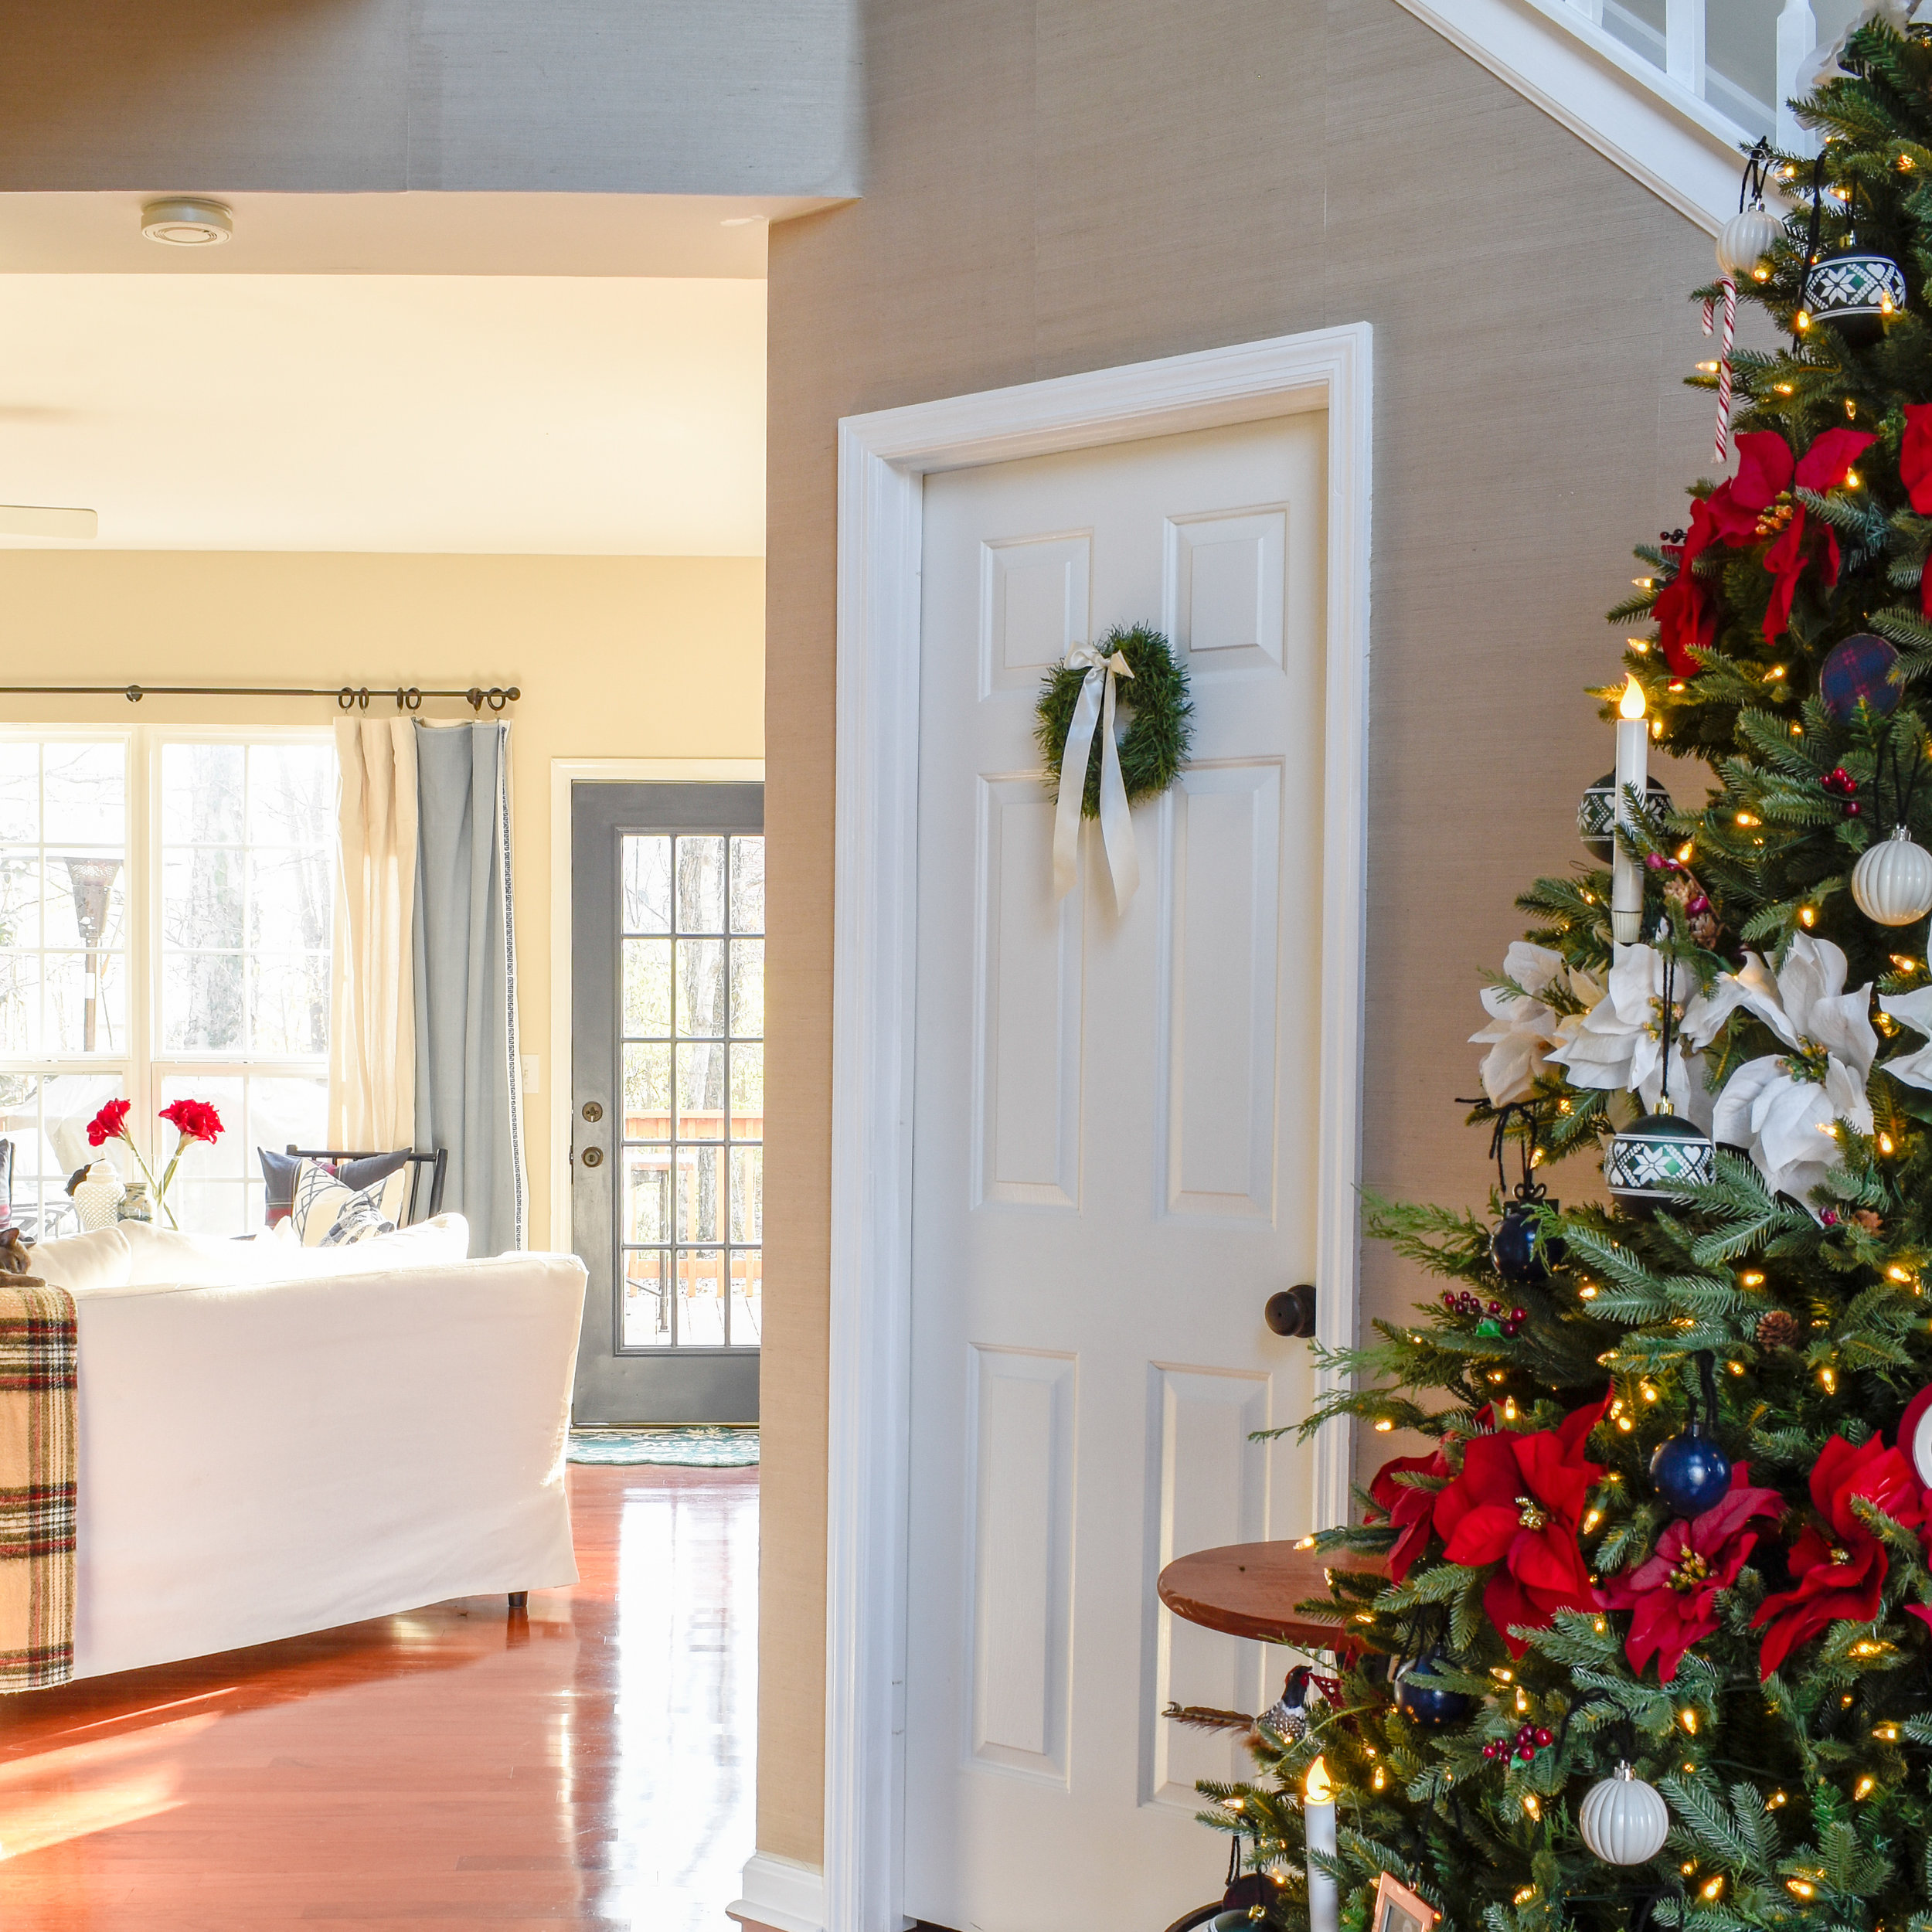 Christmas Home Tour: How To Decorate with Traditional Holiday Decor On A Budget | Simple seasonal touches to make a home feel warm and inviting for Christmas guest. #christmasdecor #winterhomedecor